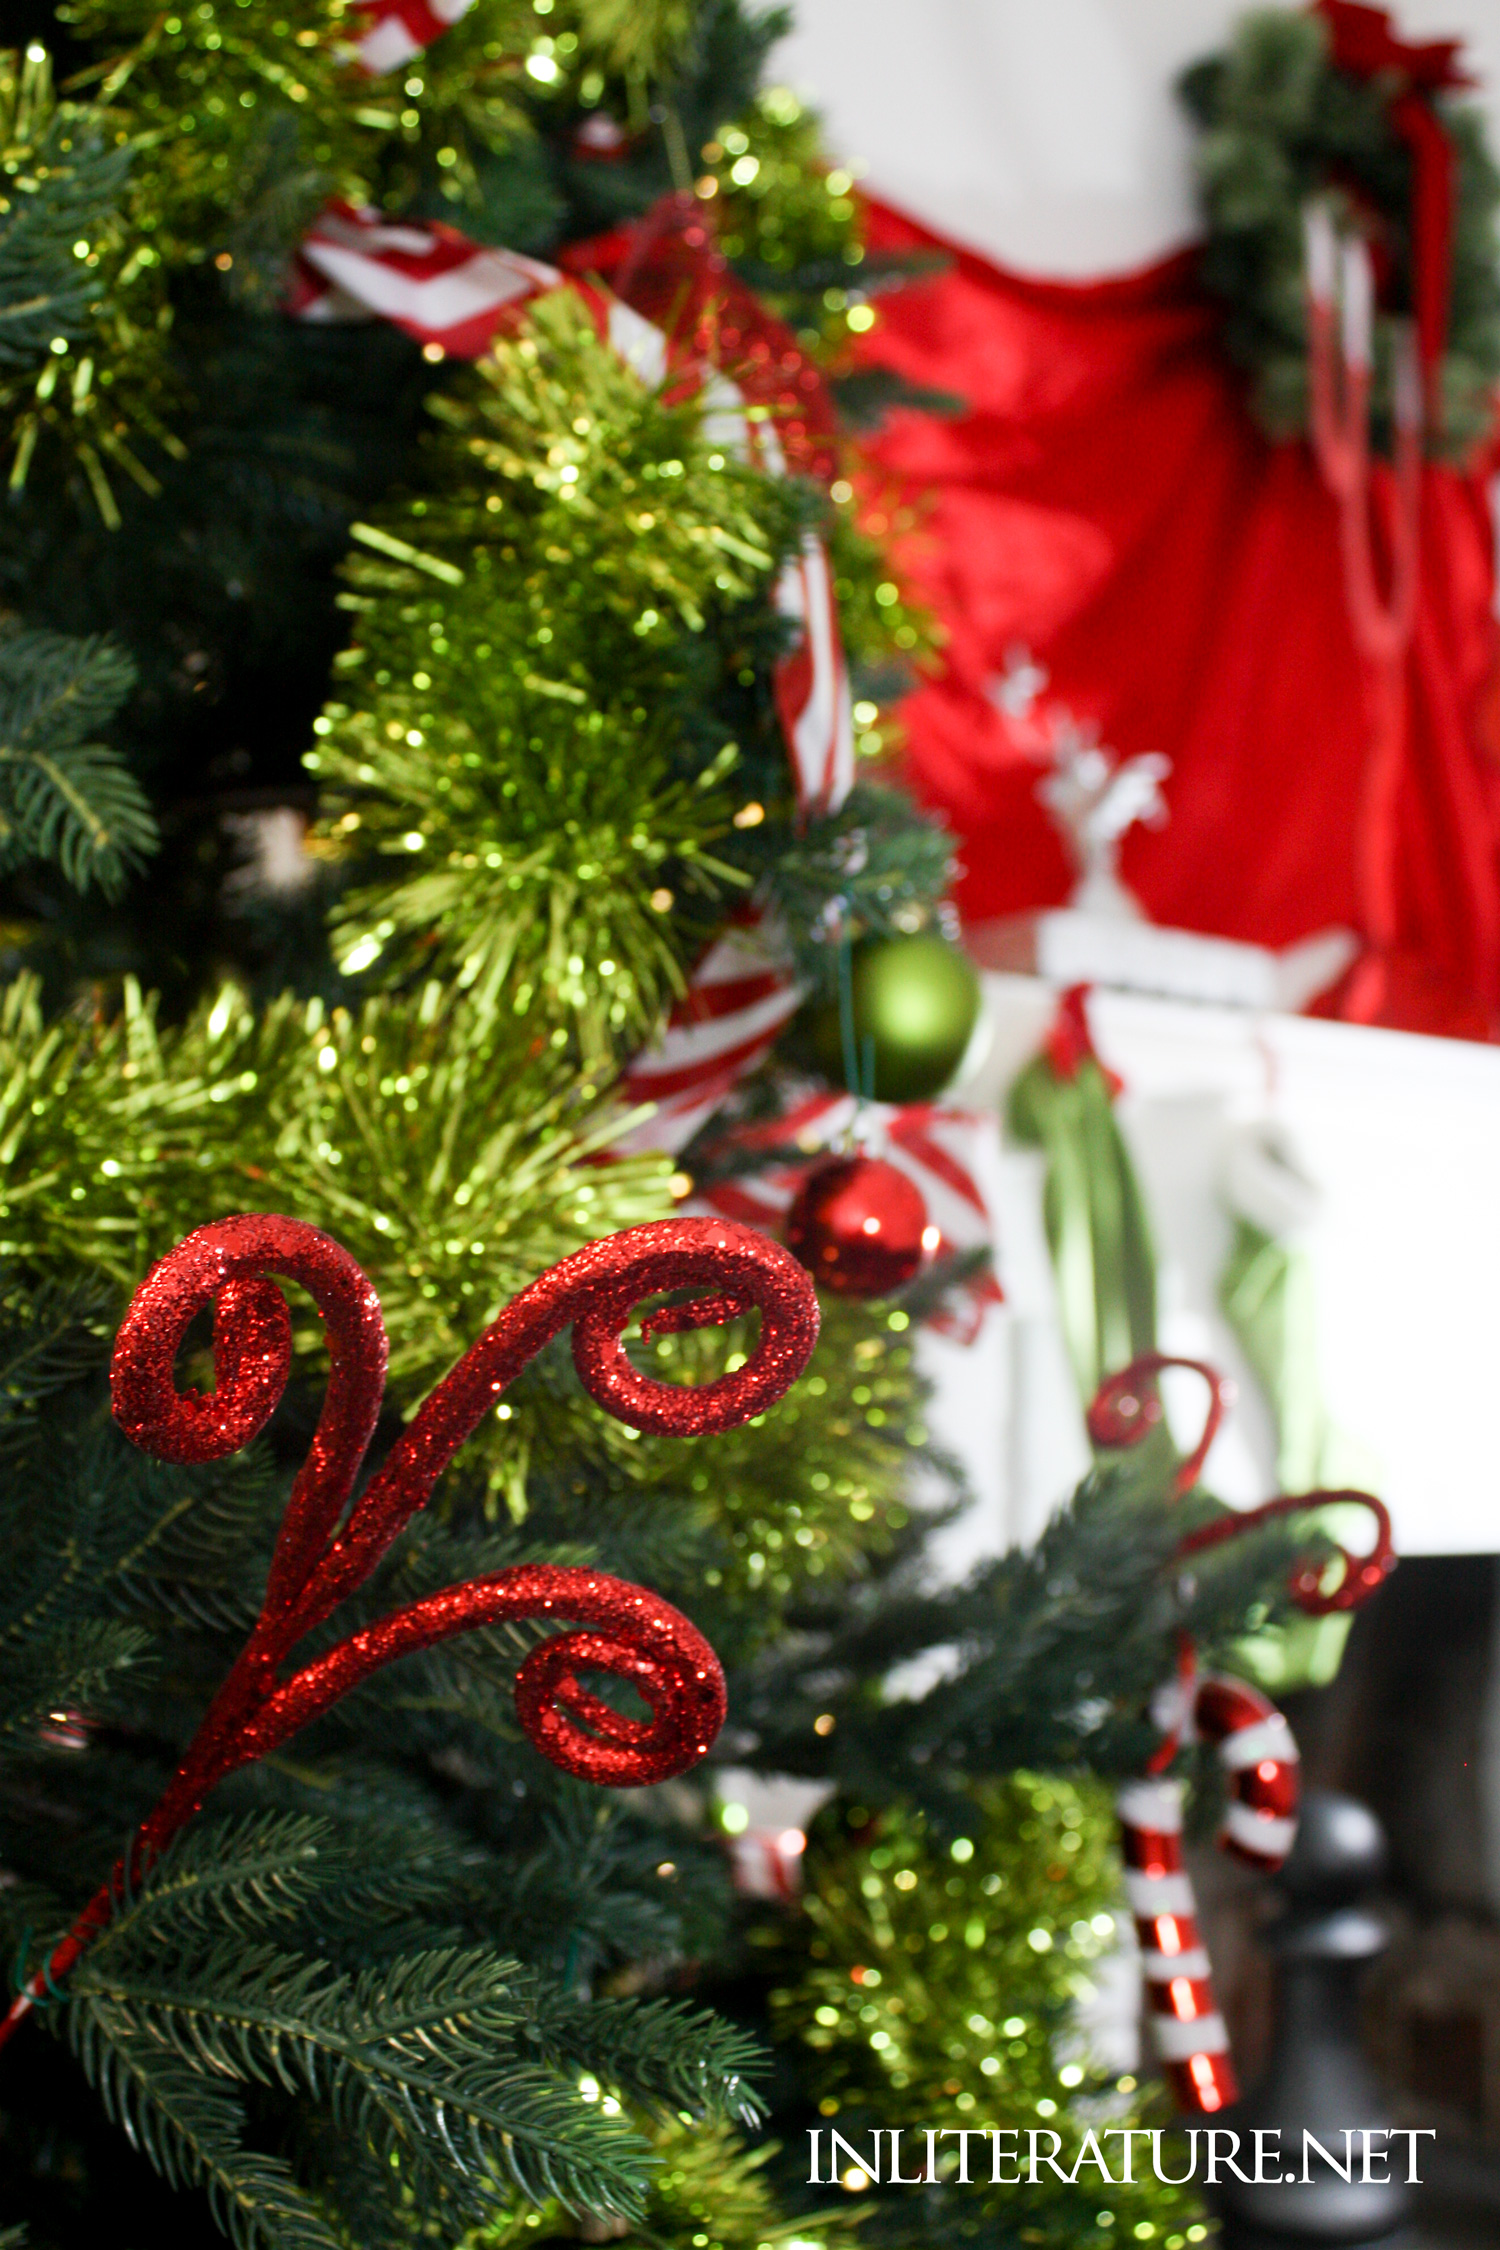 Decorating your Christmas tree Who-ville style. Use curly tree picks to create a topsy turvy feel.